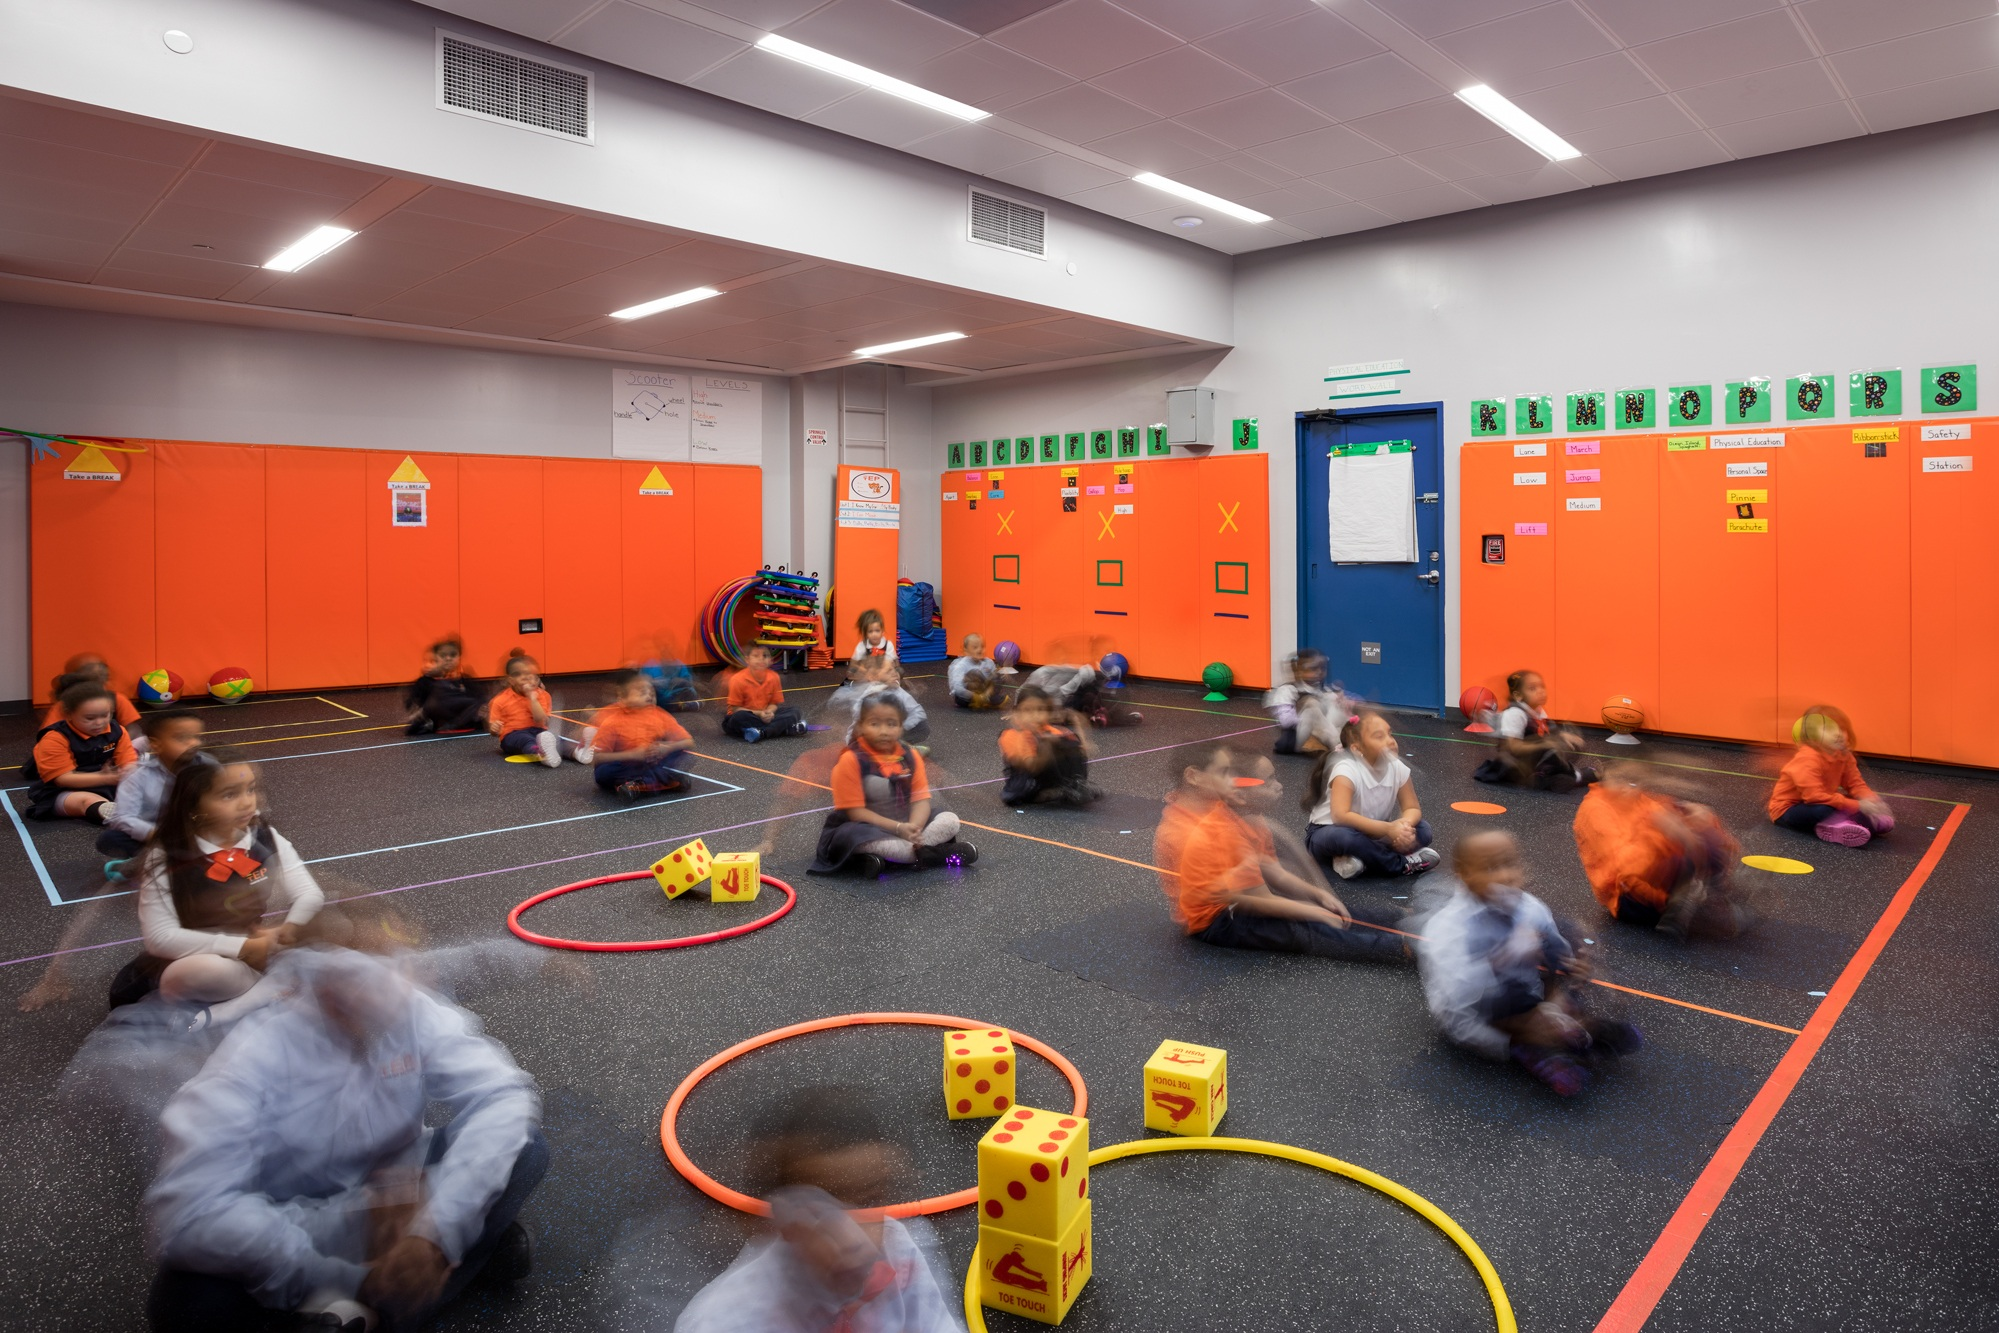 Loci Completes Design Work at TEP Charter School - September 2016Brooklyn Prospect Charter's K-5 elementary school is complete after four years of phased renovations designed by Loci.